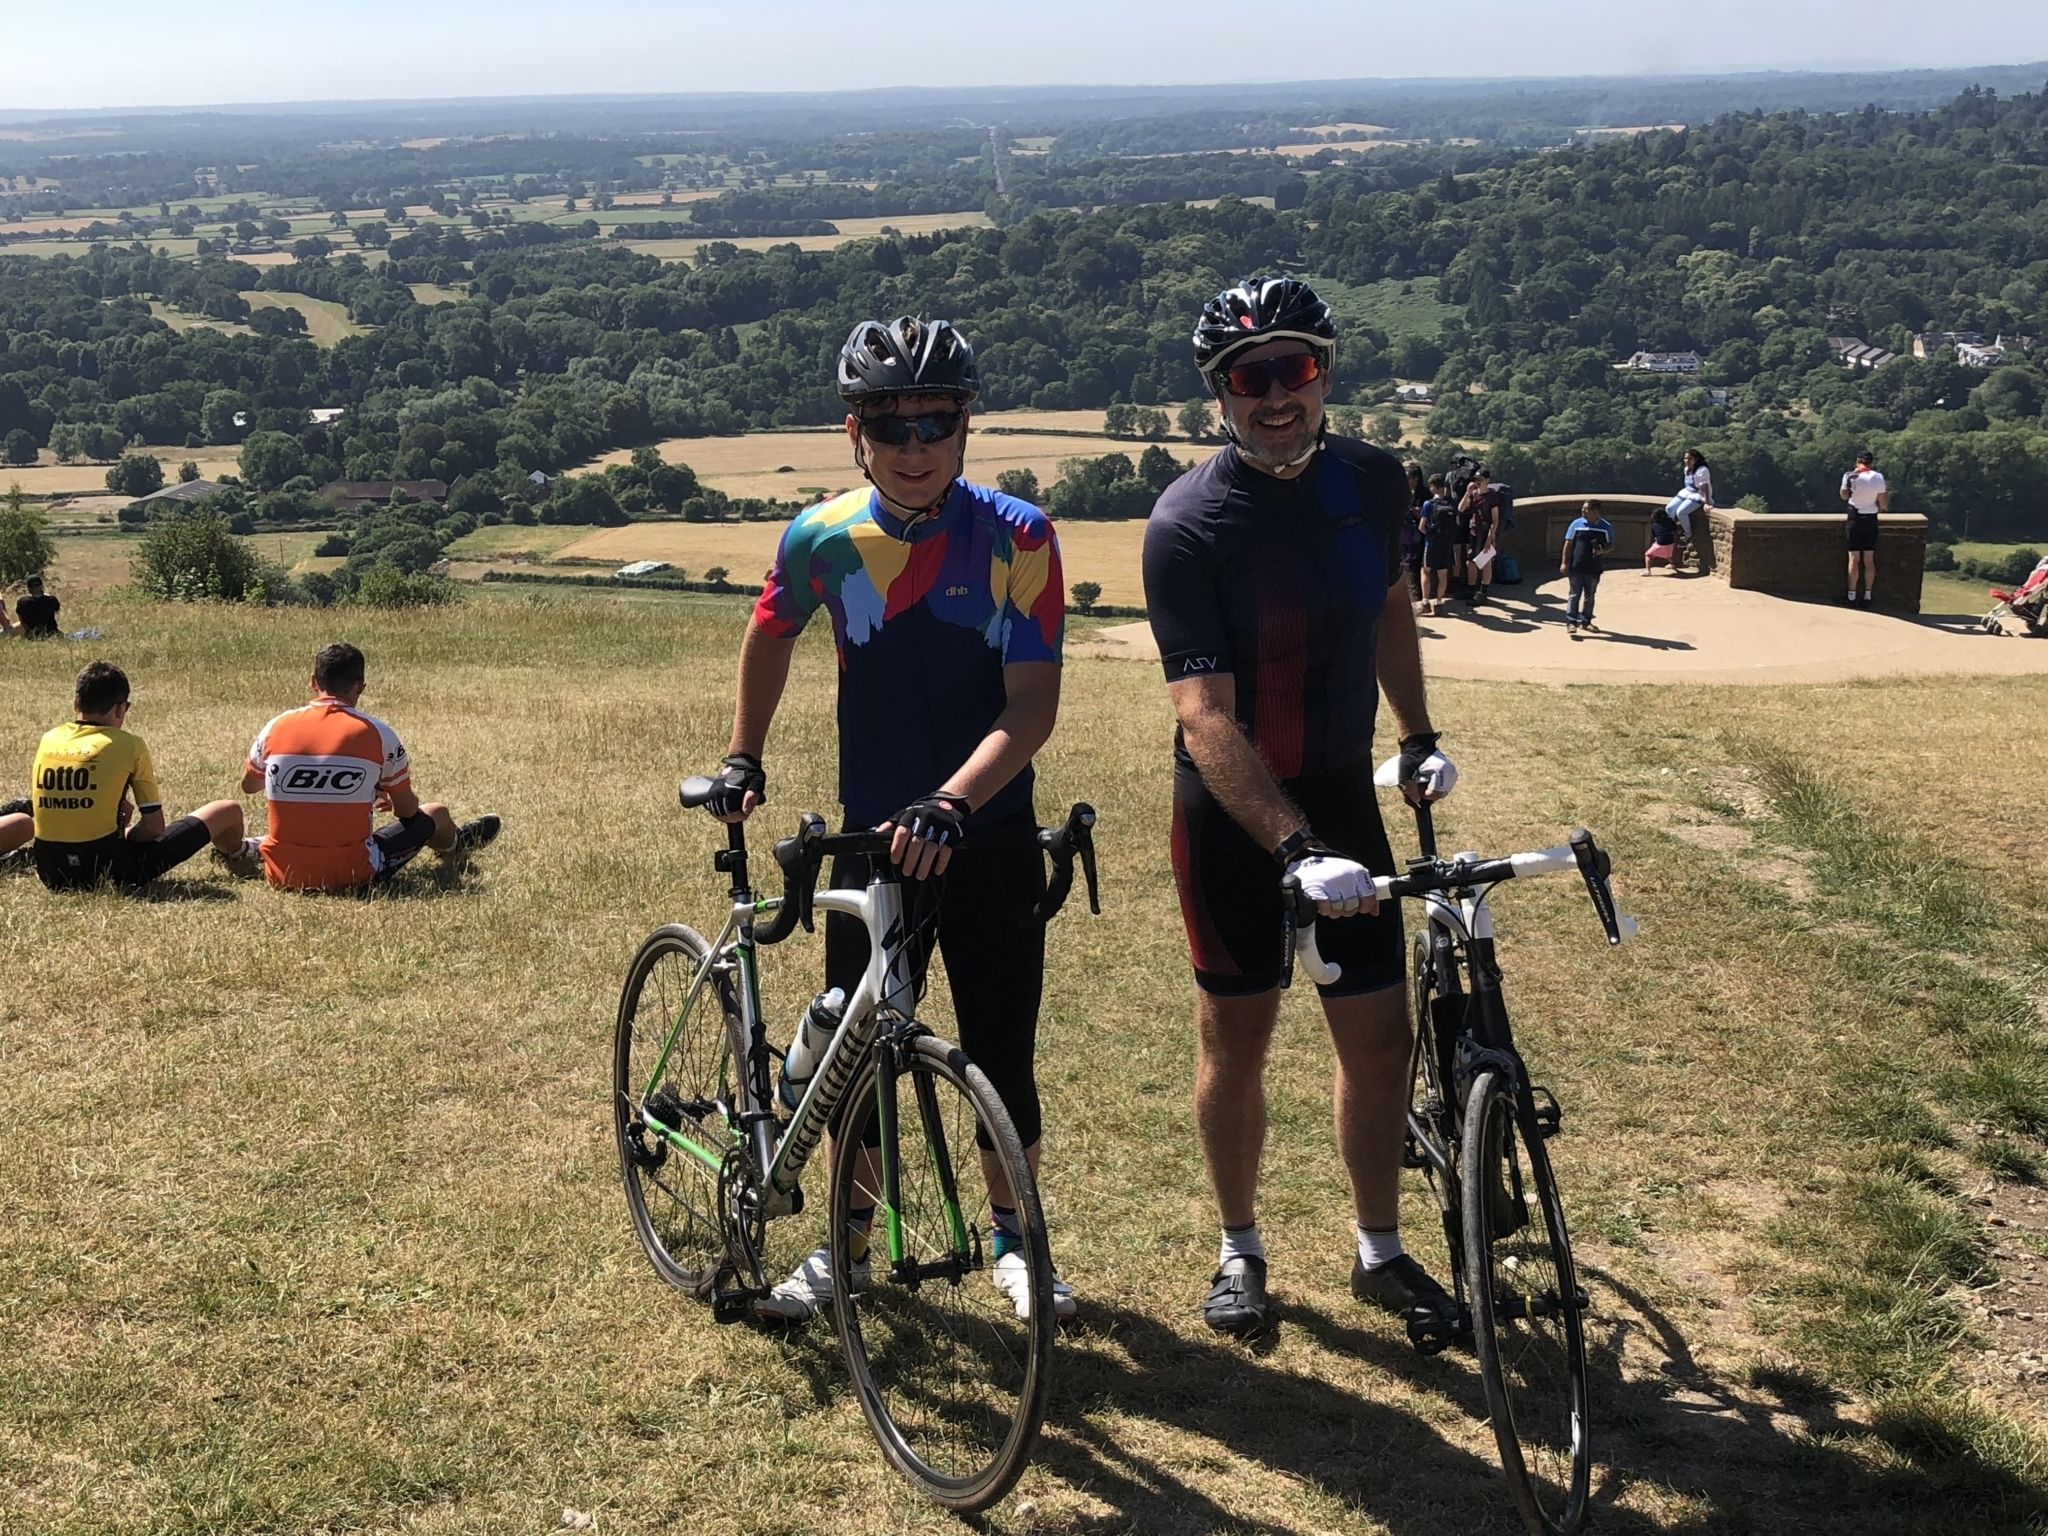 Billy and Joel Brunger Ride London19cyclists consentgiven 10 01 19